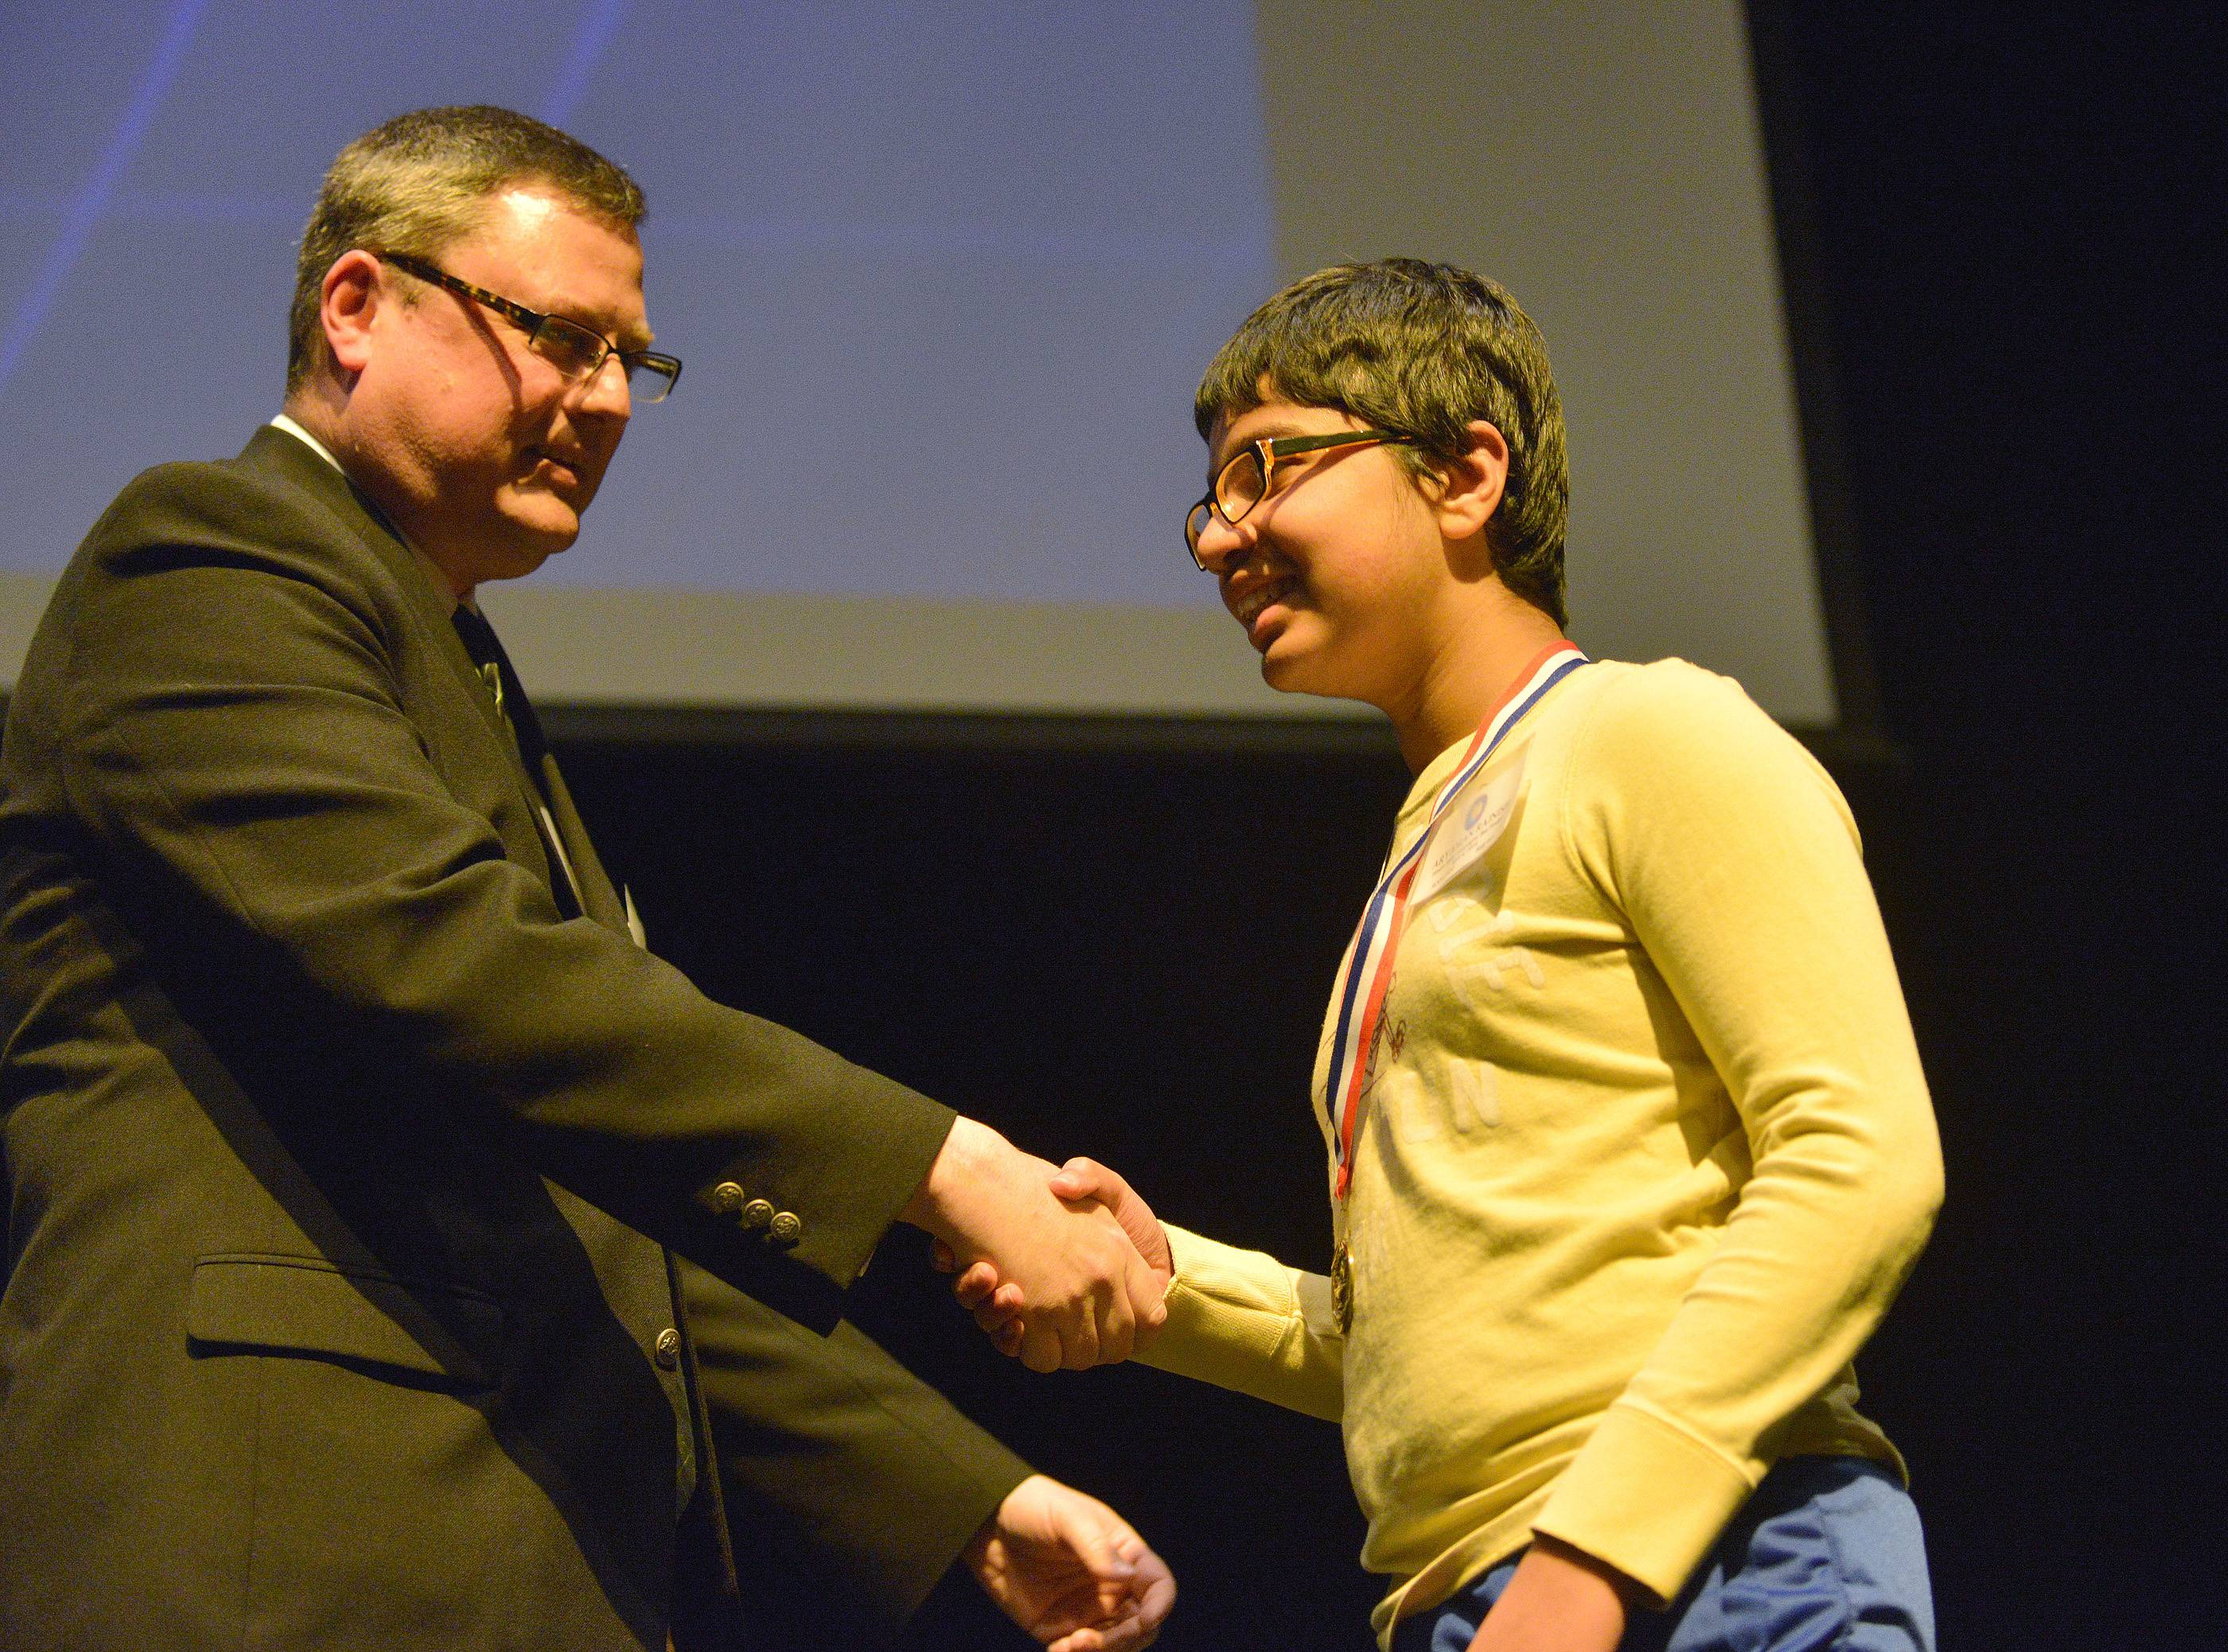 Aryaman Rajnish of Naperville receives a medal from State Coordinator Michael Middleton after competing in the state-level competition of the National Geographic Bee in Glen Ellyn Friday.